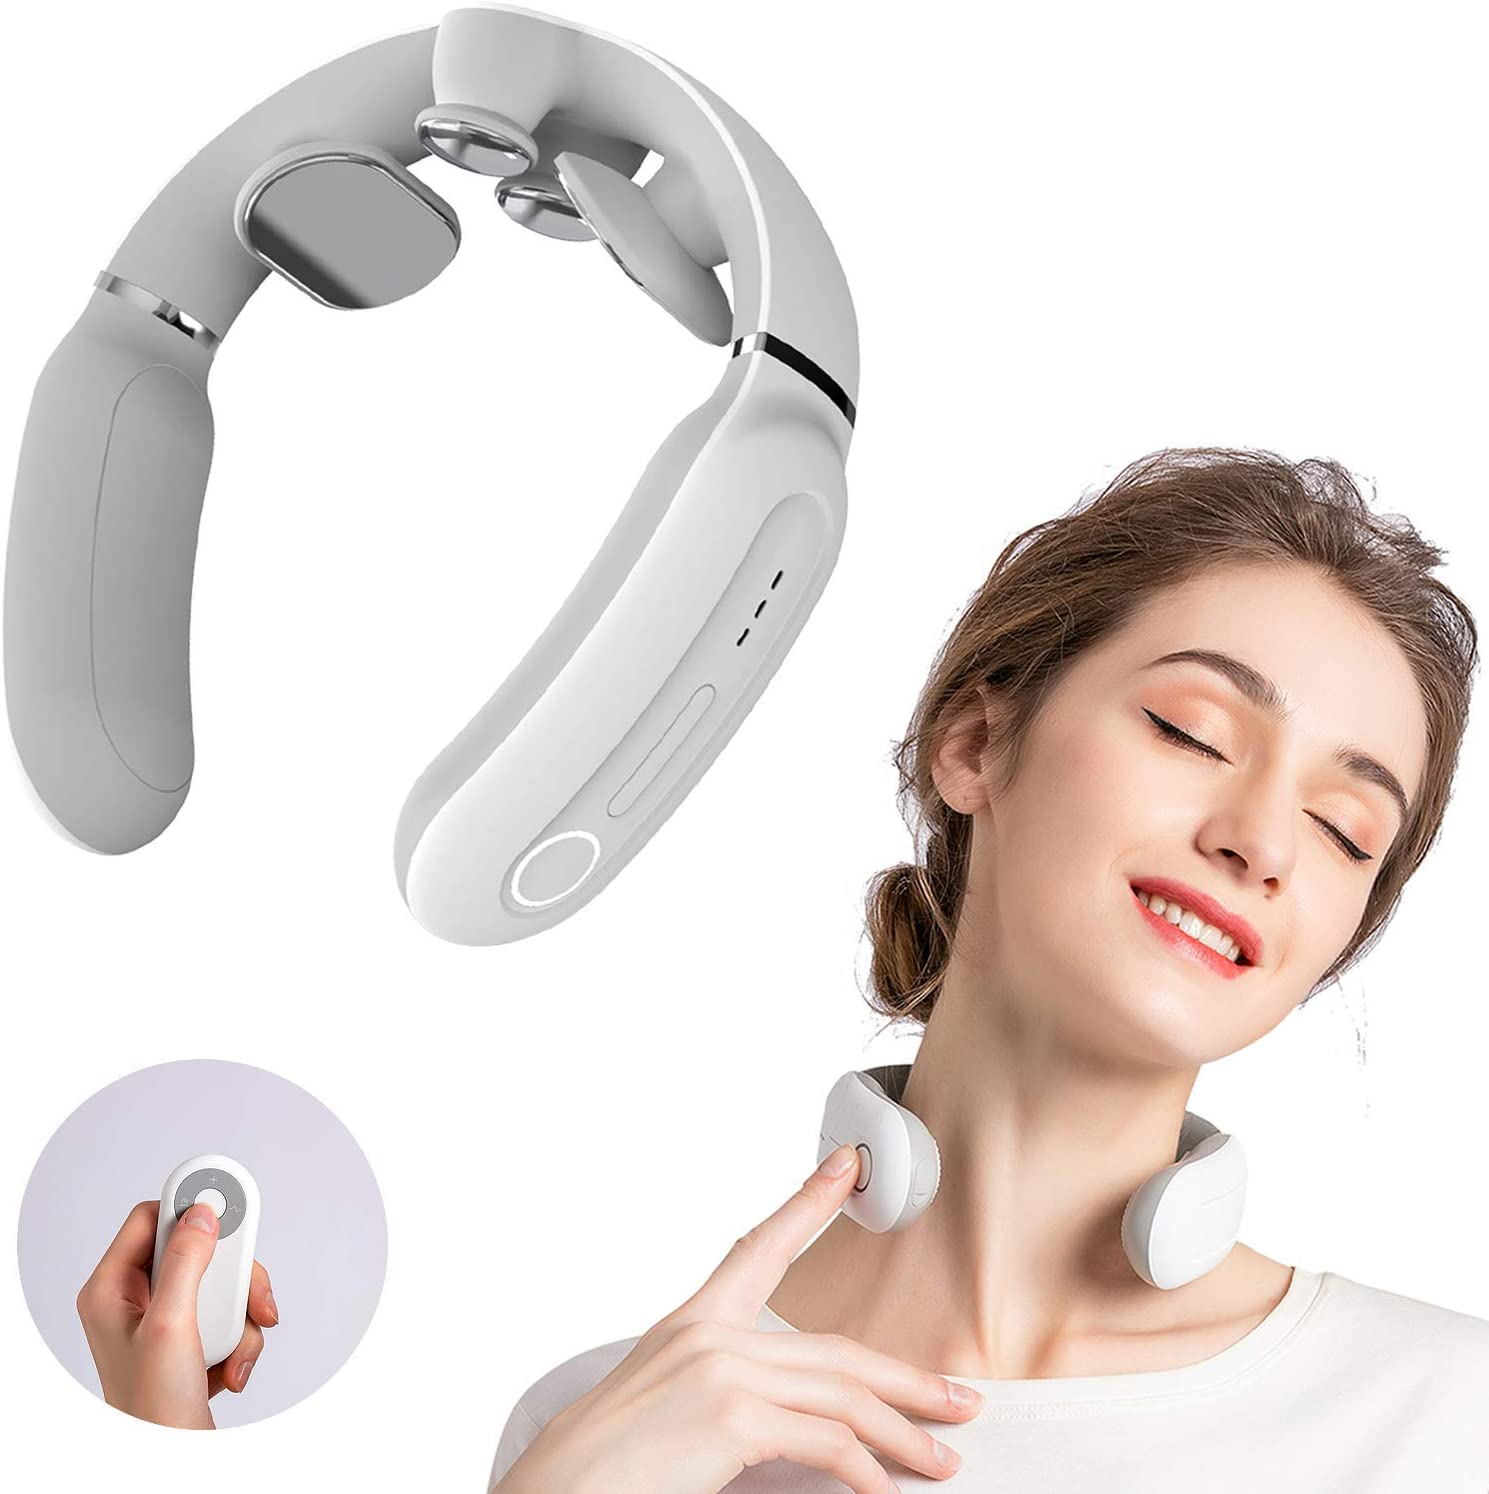 Free Amazon Promo Code 2020 for Neck Relax Massager with Heat